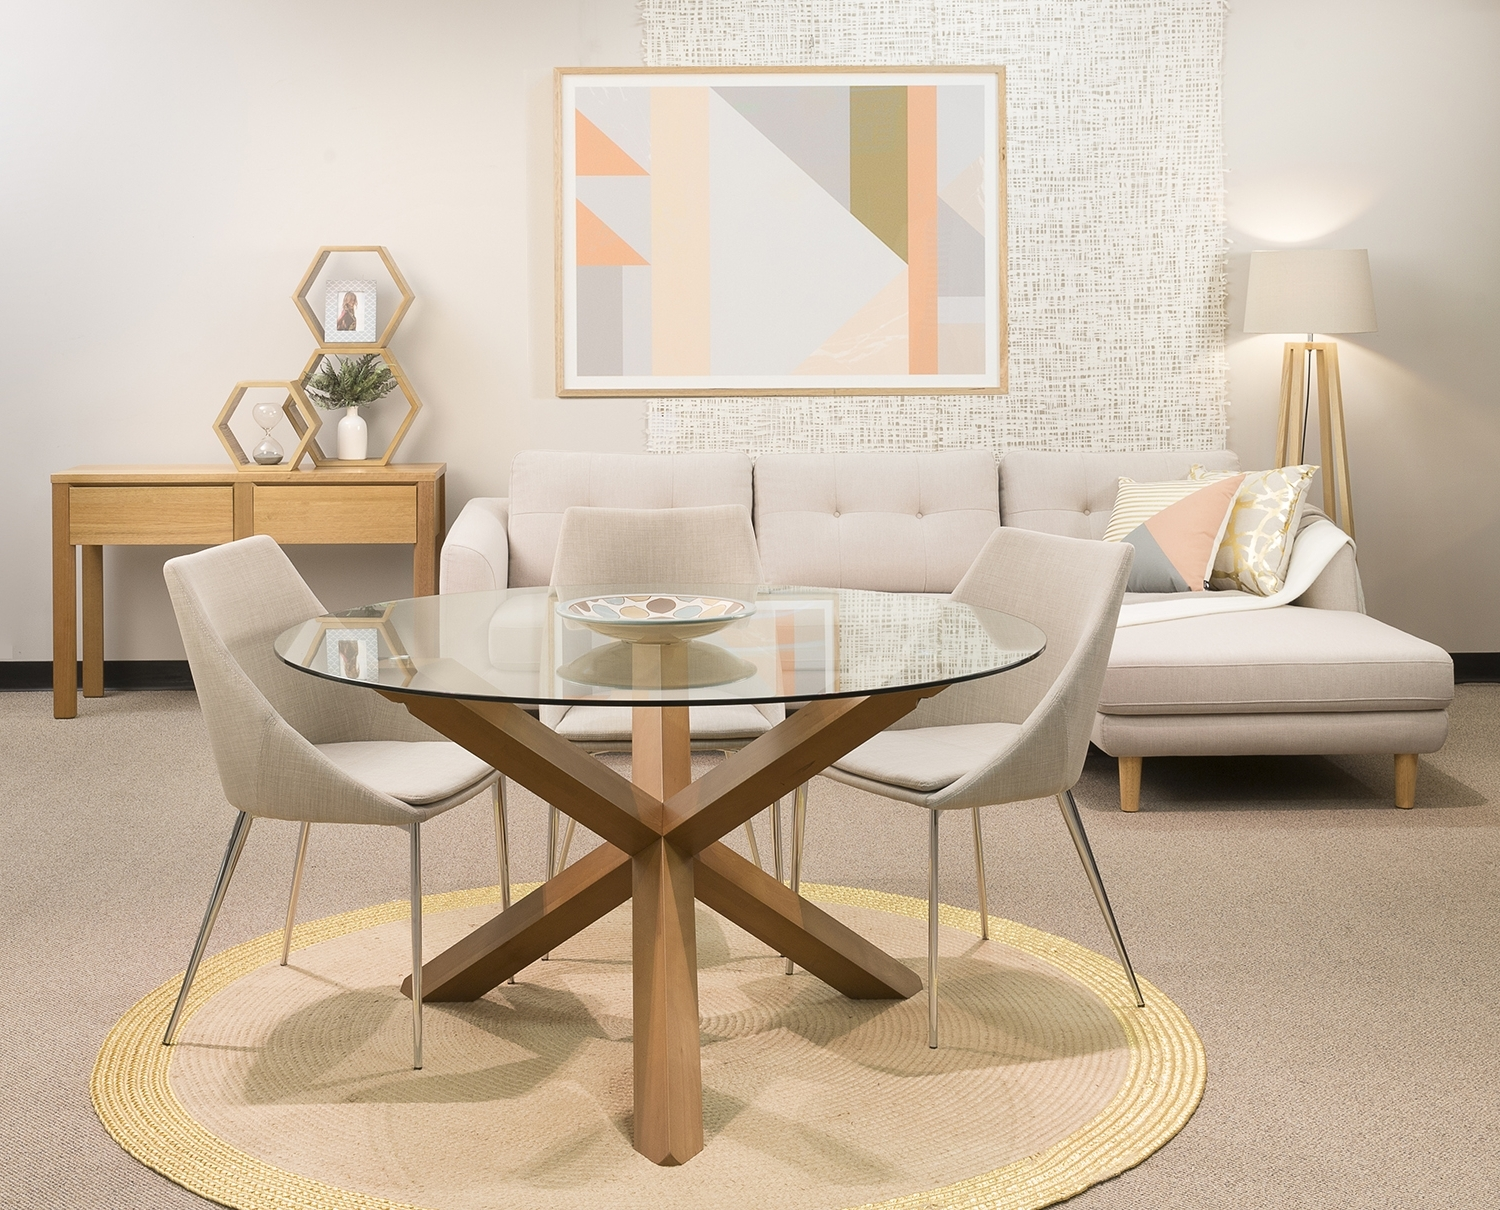 Dezign Furniture & Homewares Stores - Sydney within Oak And Glass Dining Tables Sets